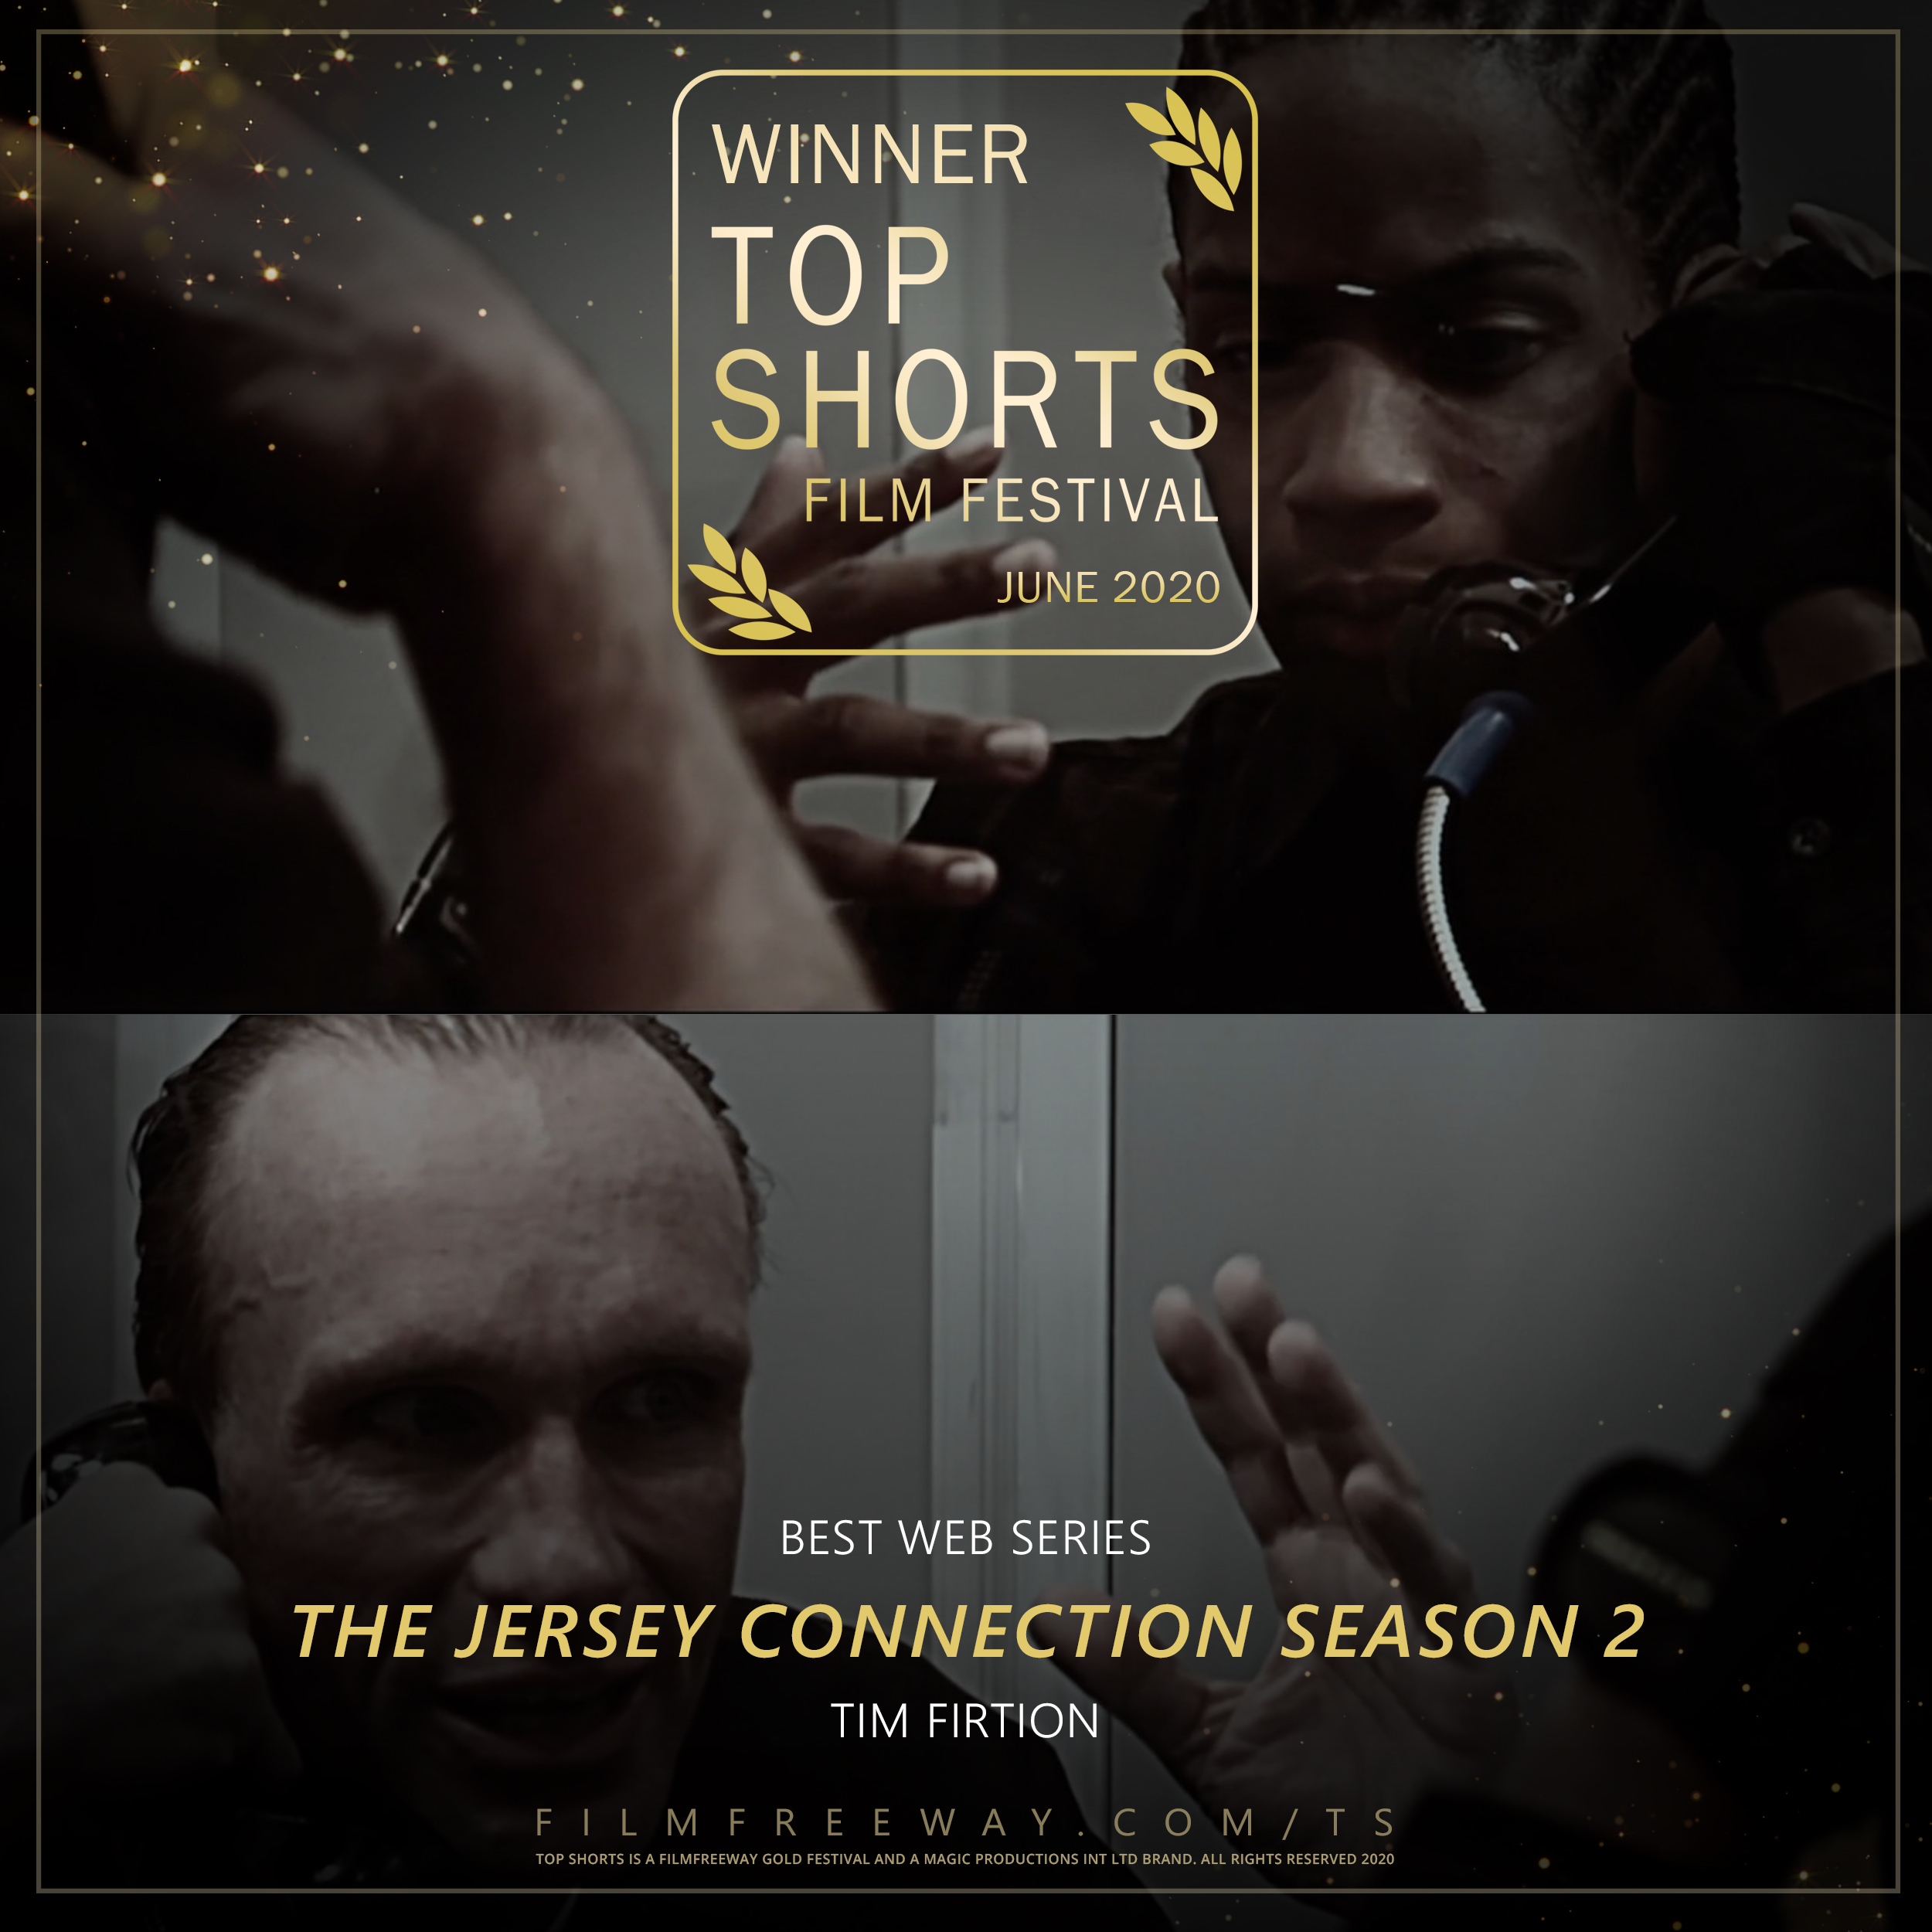 The Jersey Connection Season 2 design